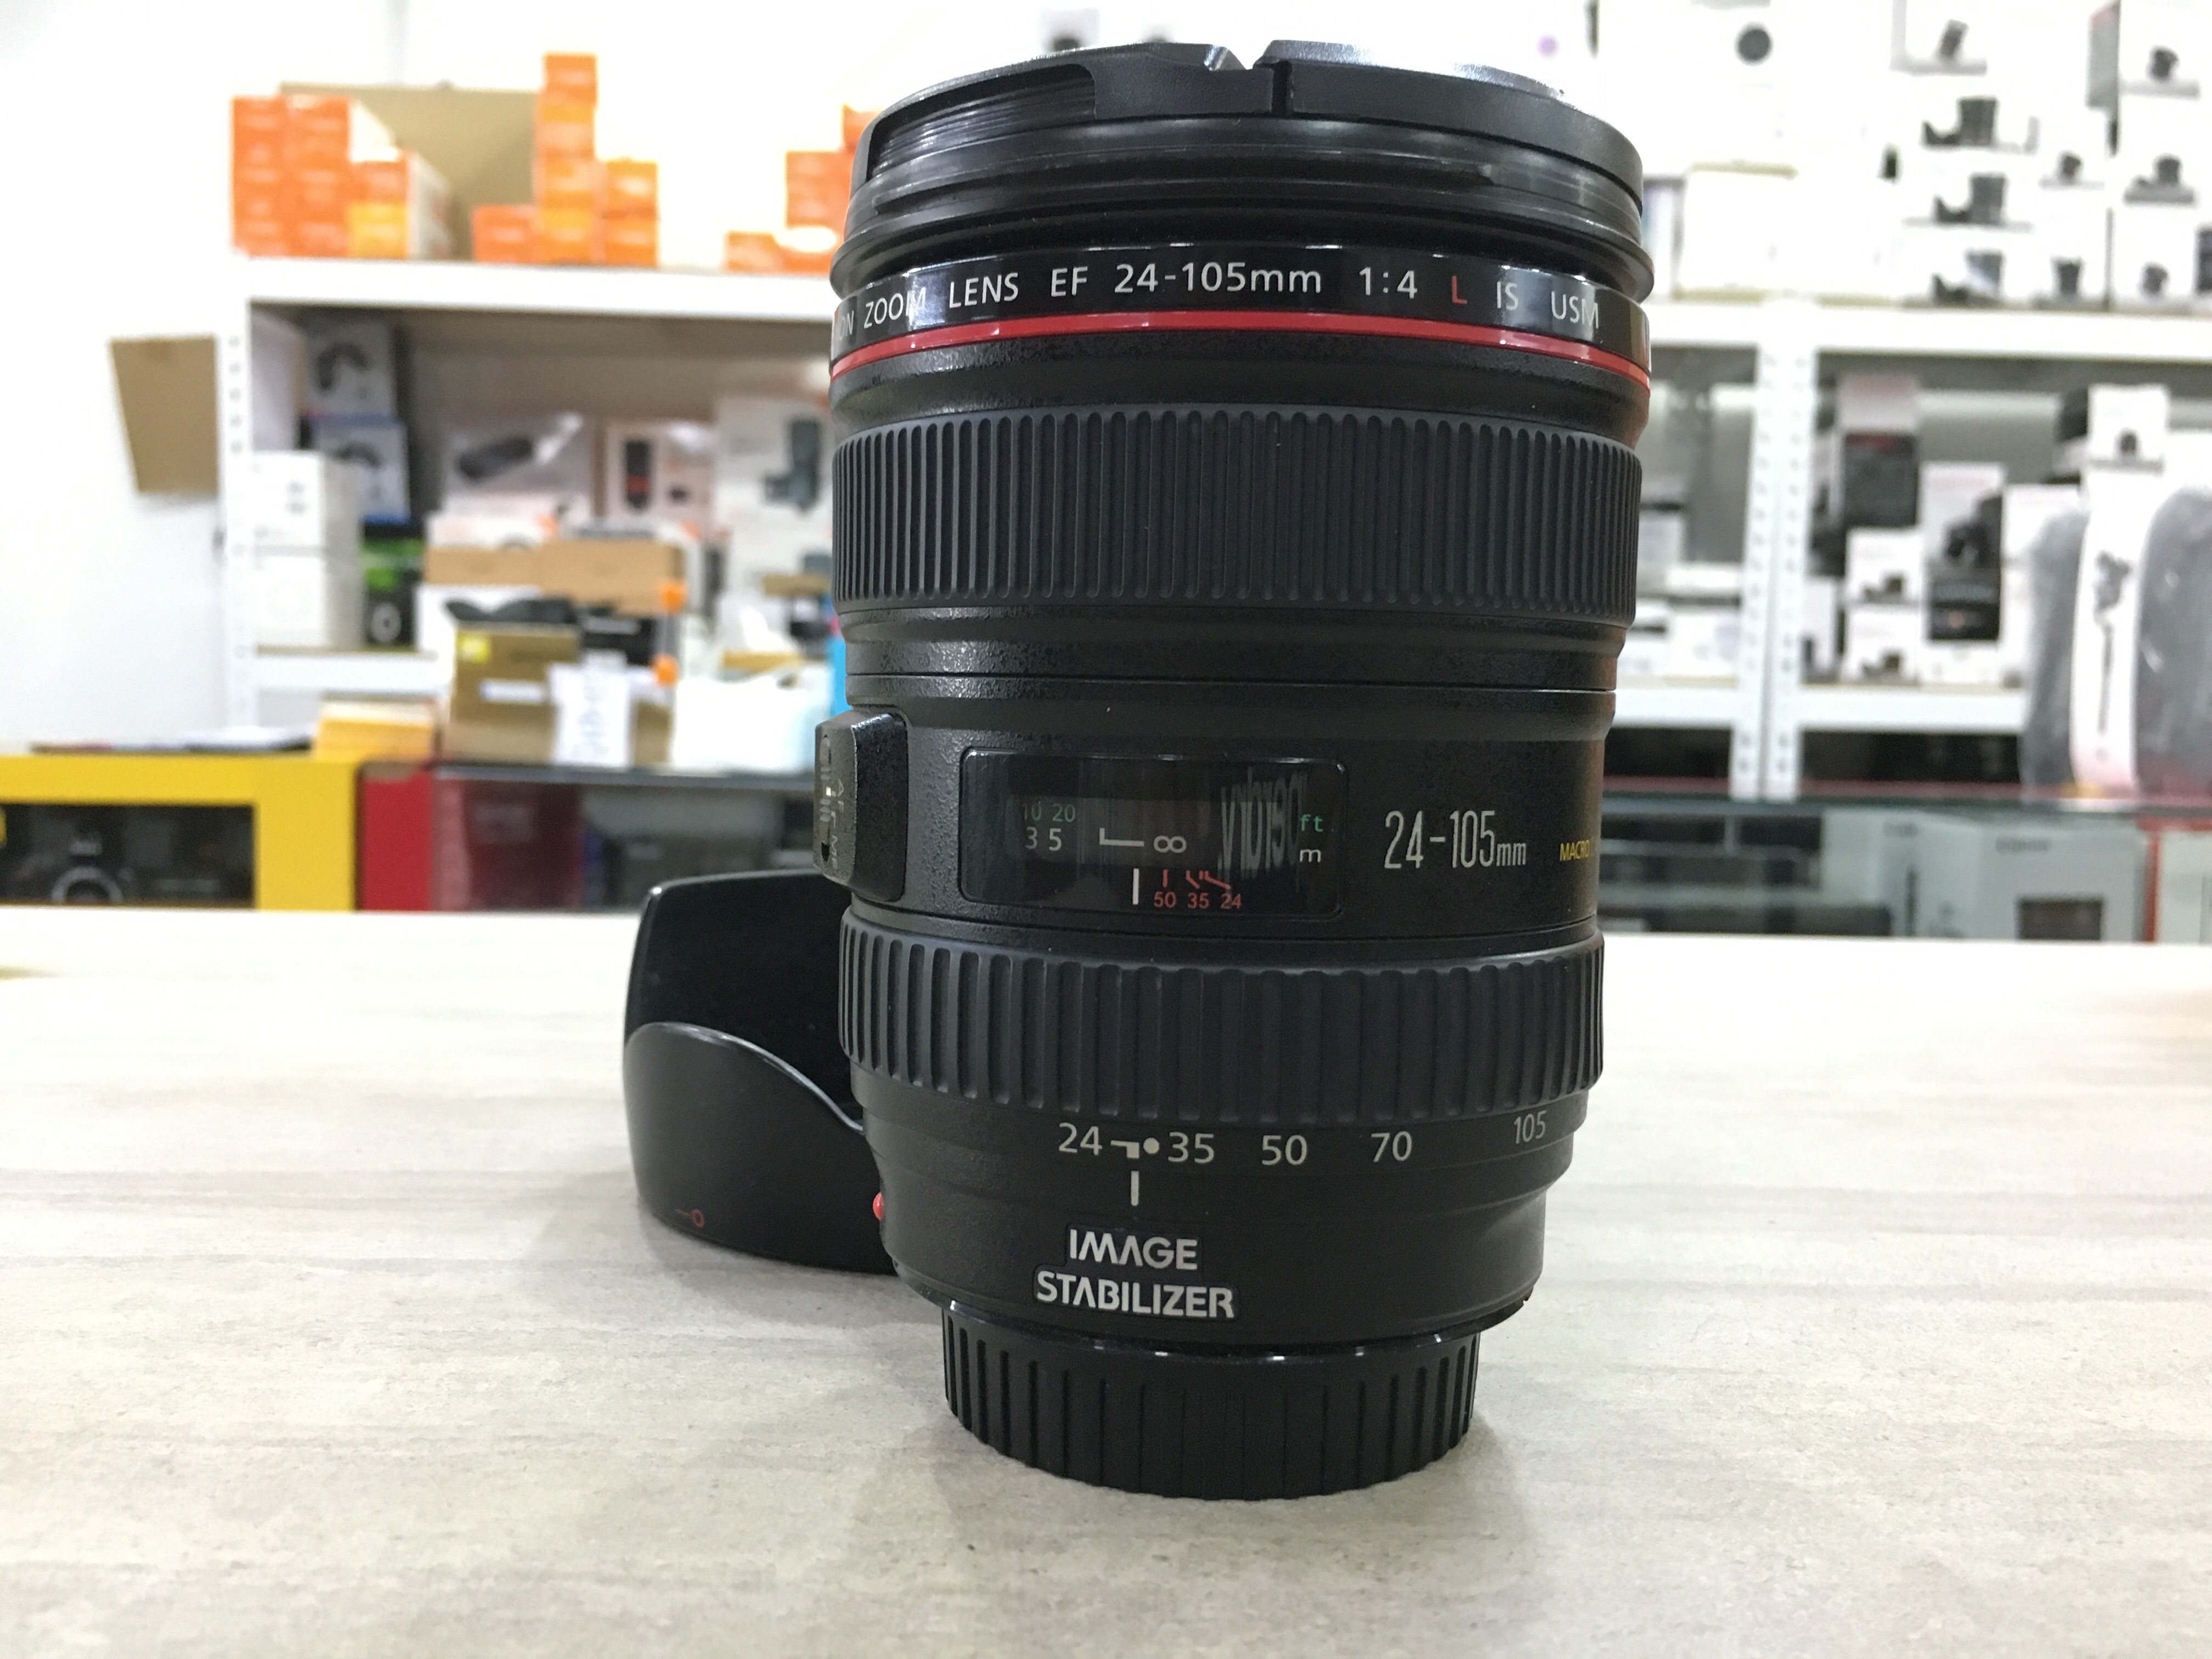 Used - Canon EF 24-105mm F4L IS USM Lens